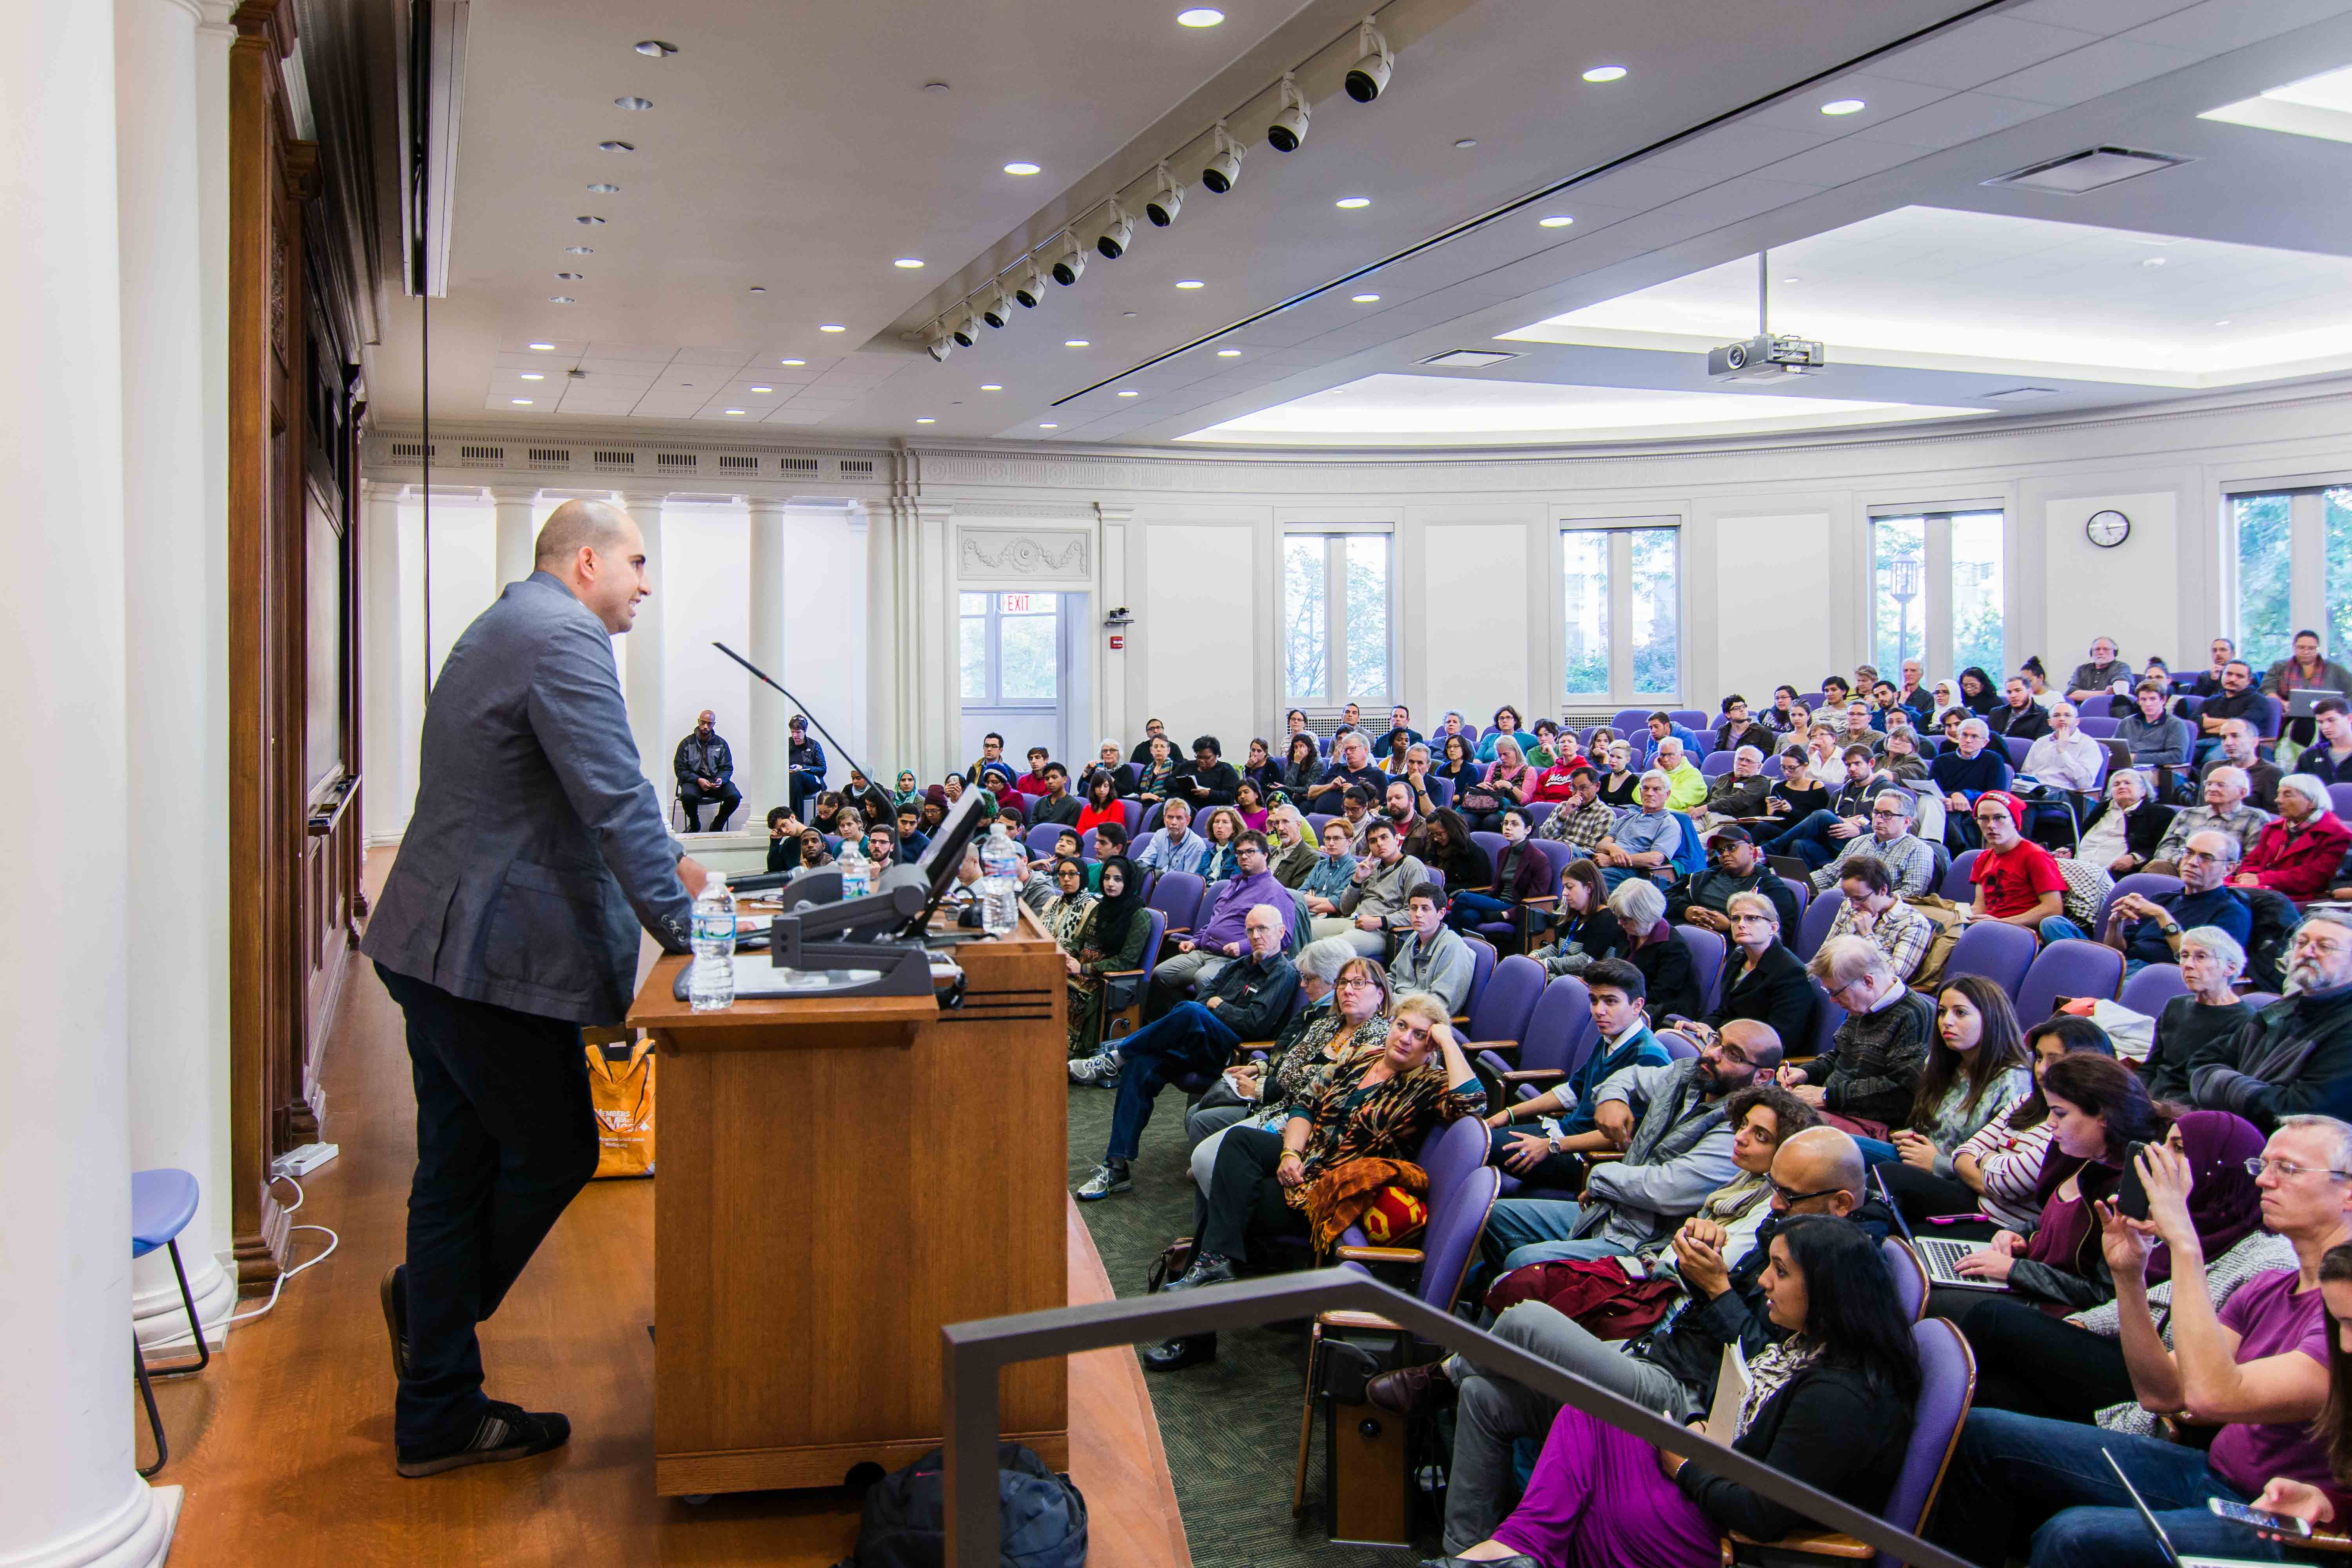 Steven Salaita addresses a crowd of about 200 in Harris Hall. Salaita, a professor who was fired from the University of Illinois over controversial tweets regarding the conflict in the Gaza Strip, delivered a speech about academic freedom and his views on the events of the summer.